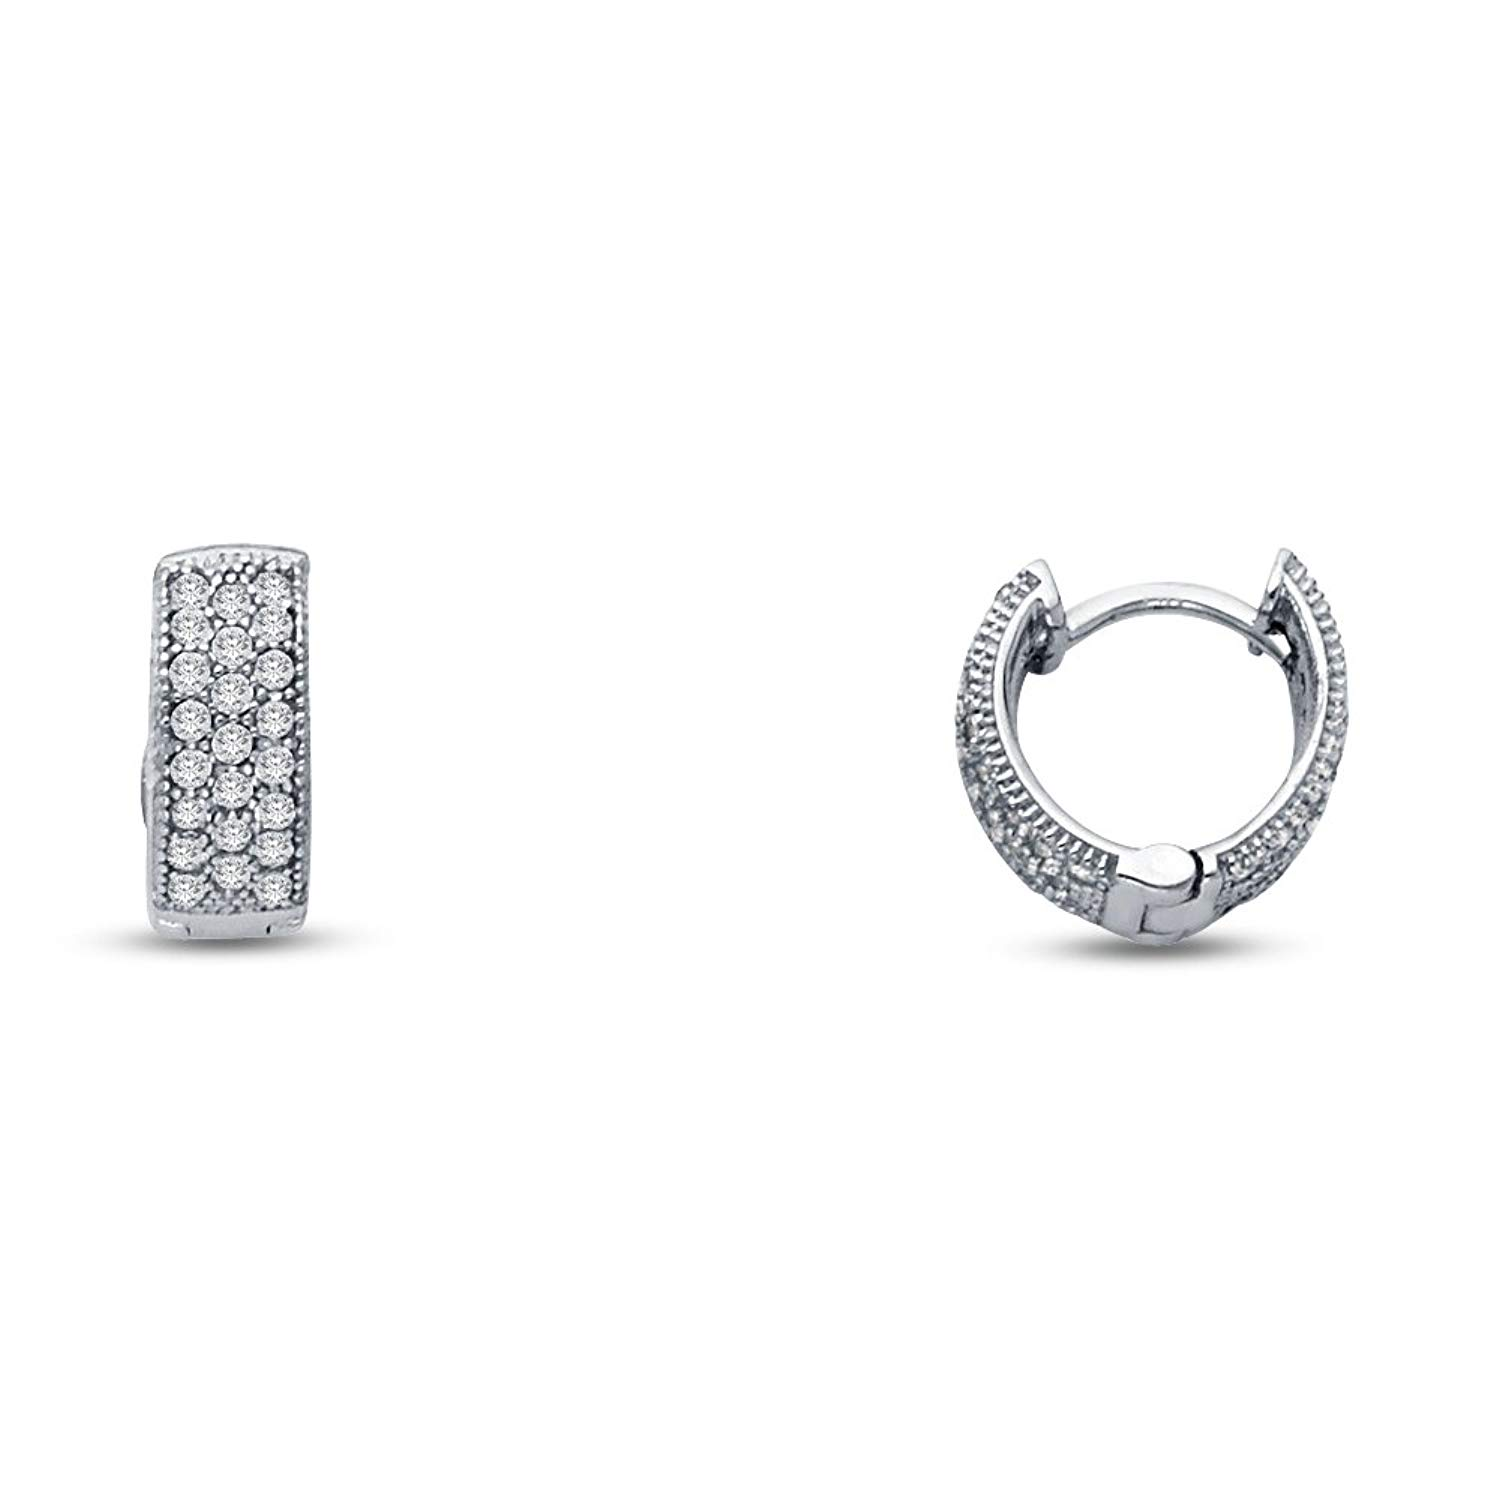 Get Quotations 14k White Gold Micro Pave Cz Cubic Zirconia Hinged Hoop Huggies Earrings 10 X